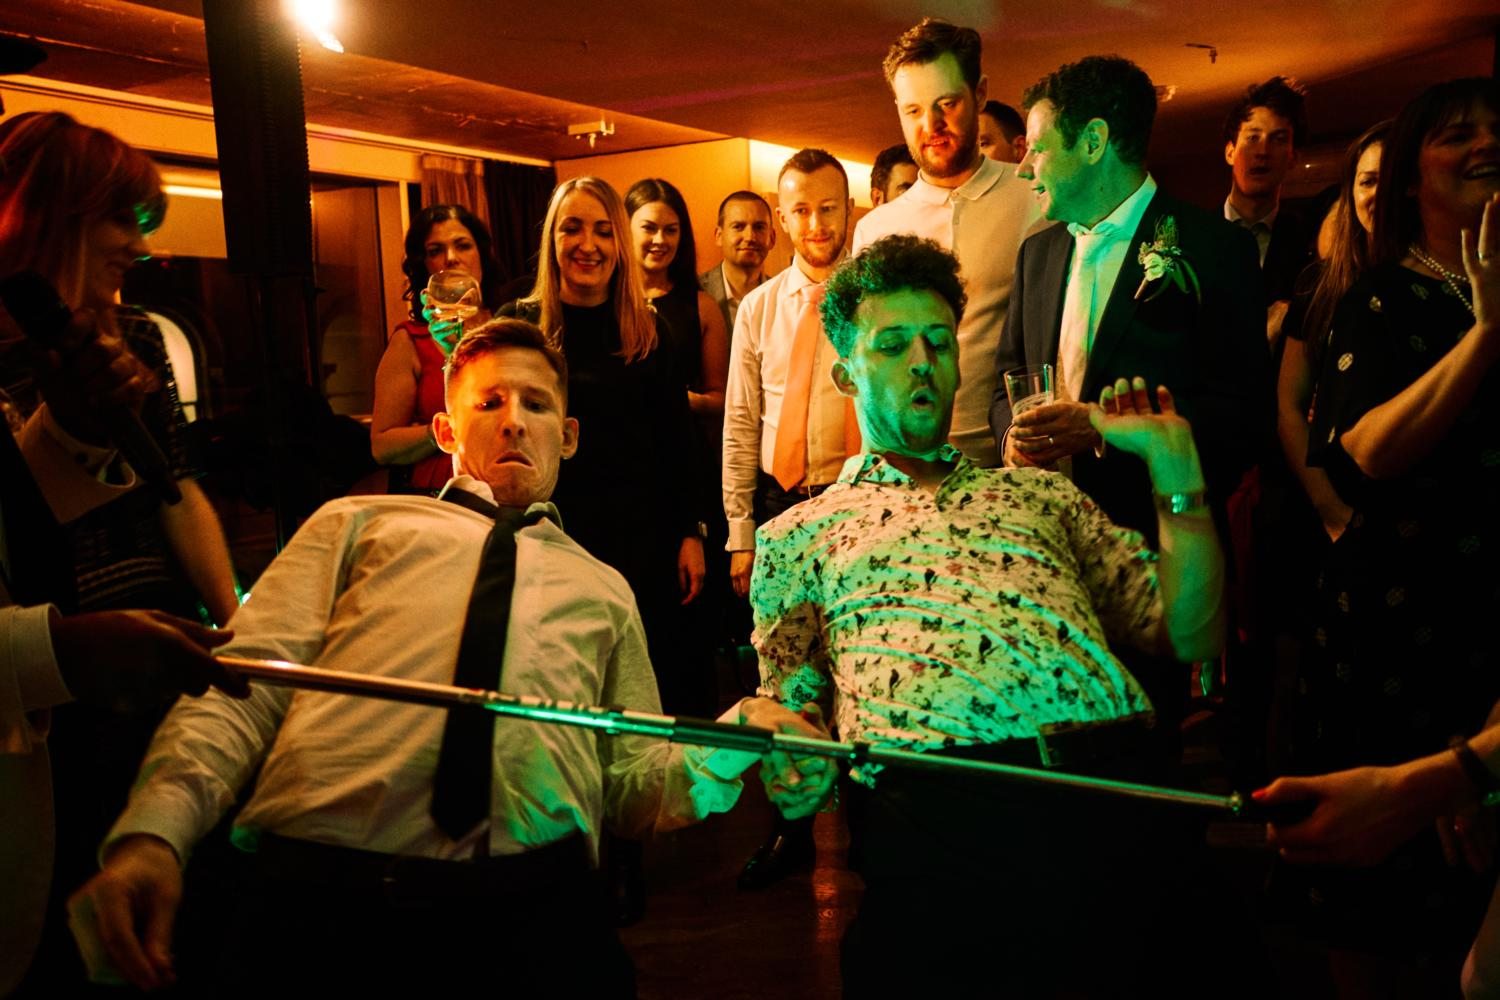 Two dancers play limbo at a wedding party in Dublin